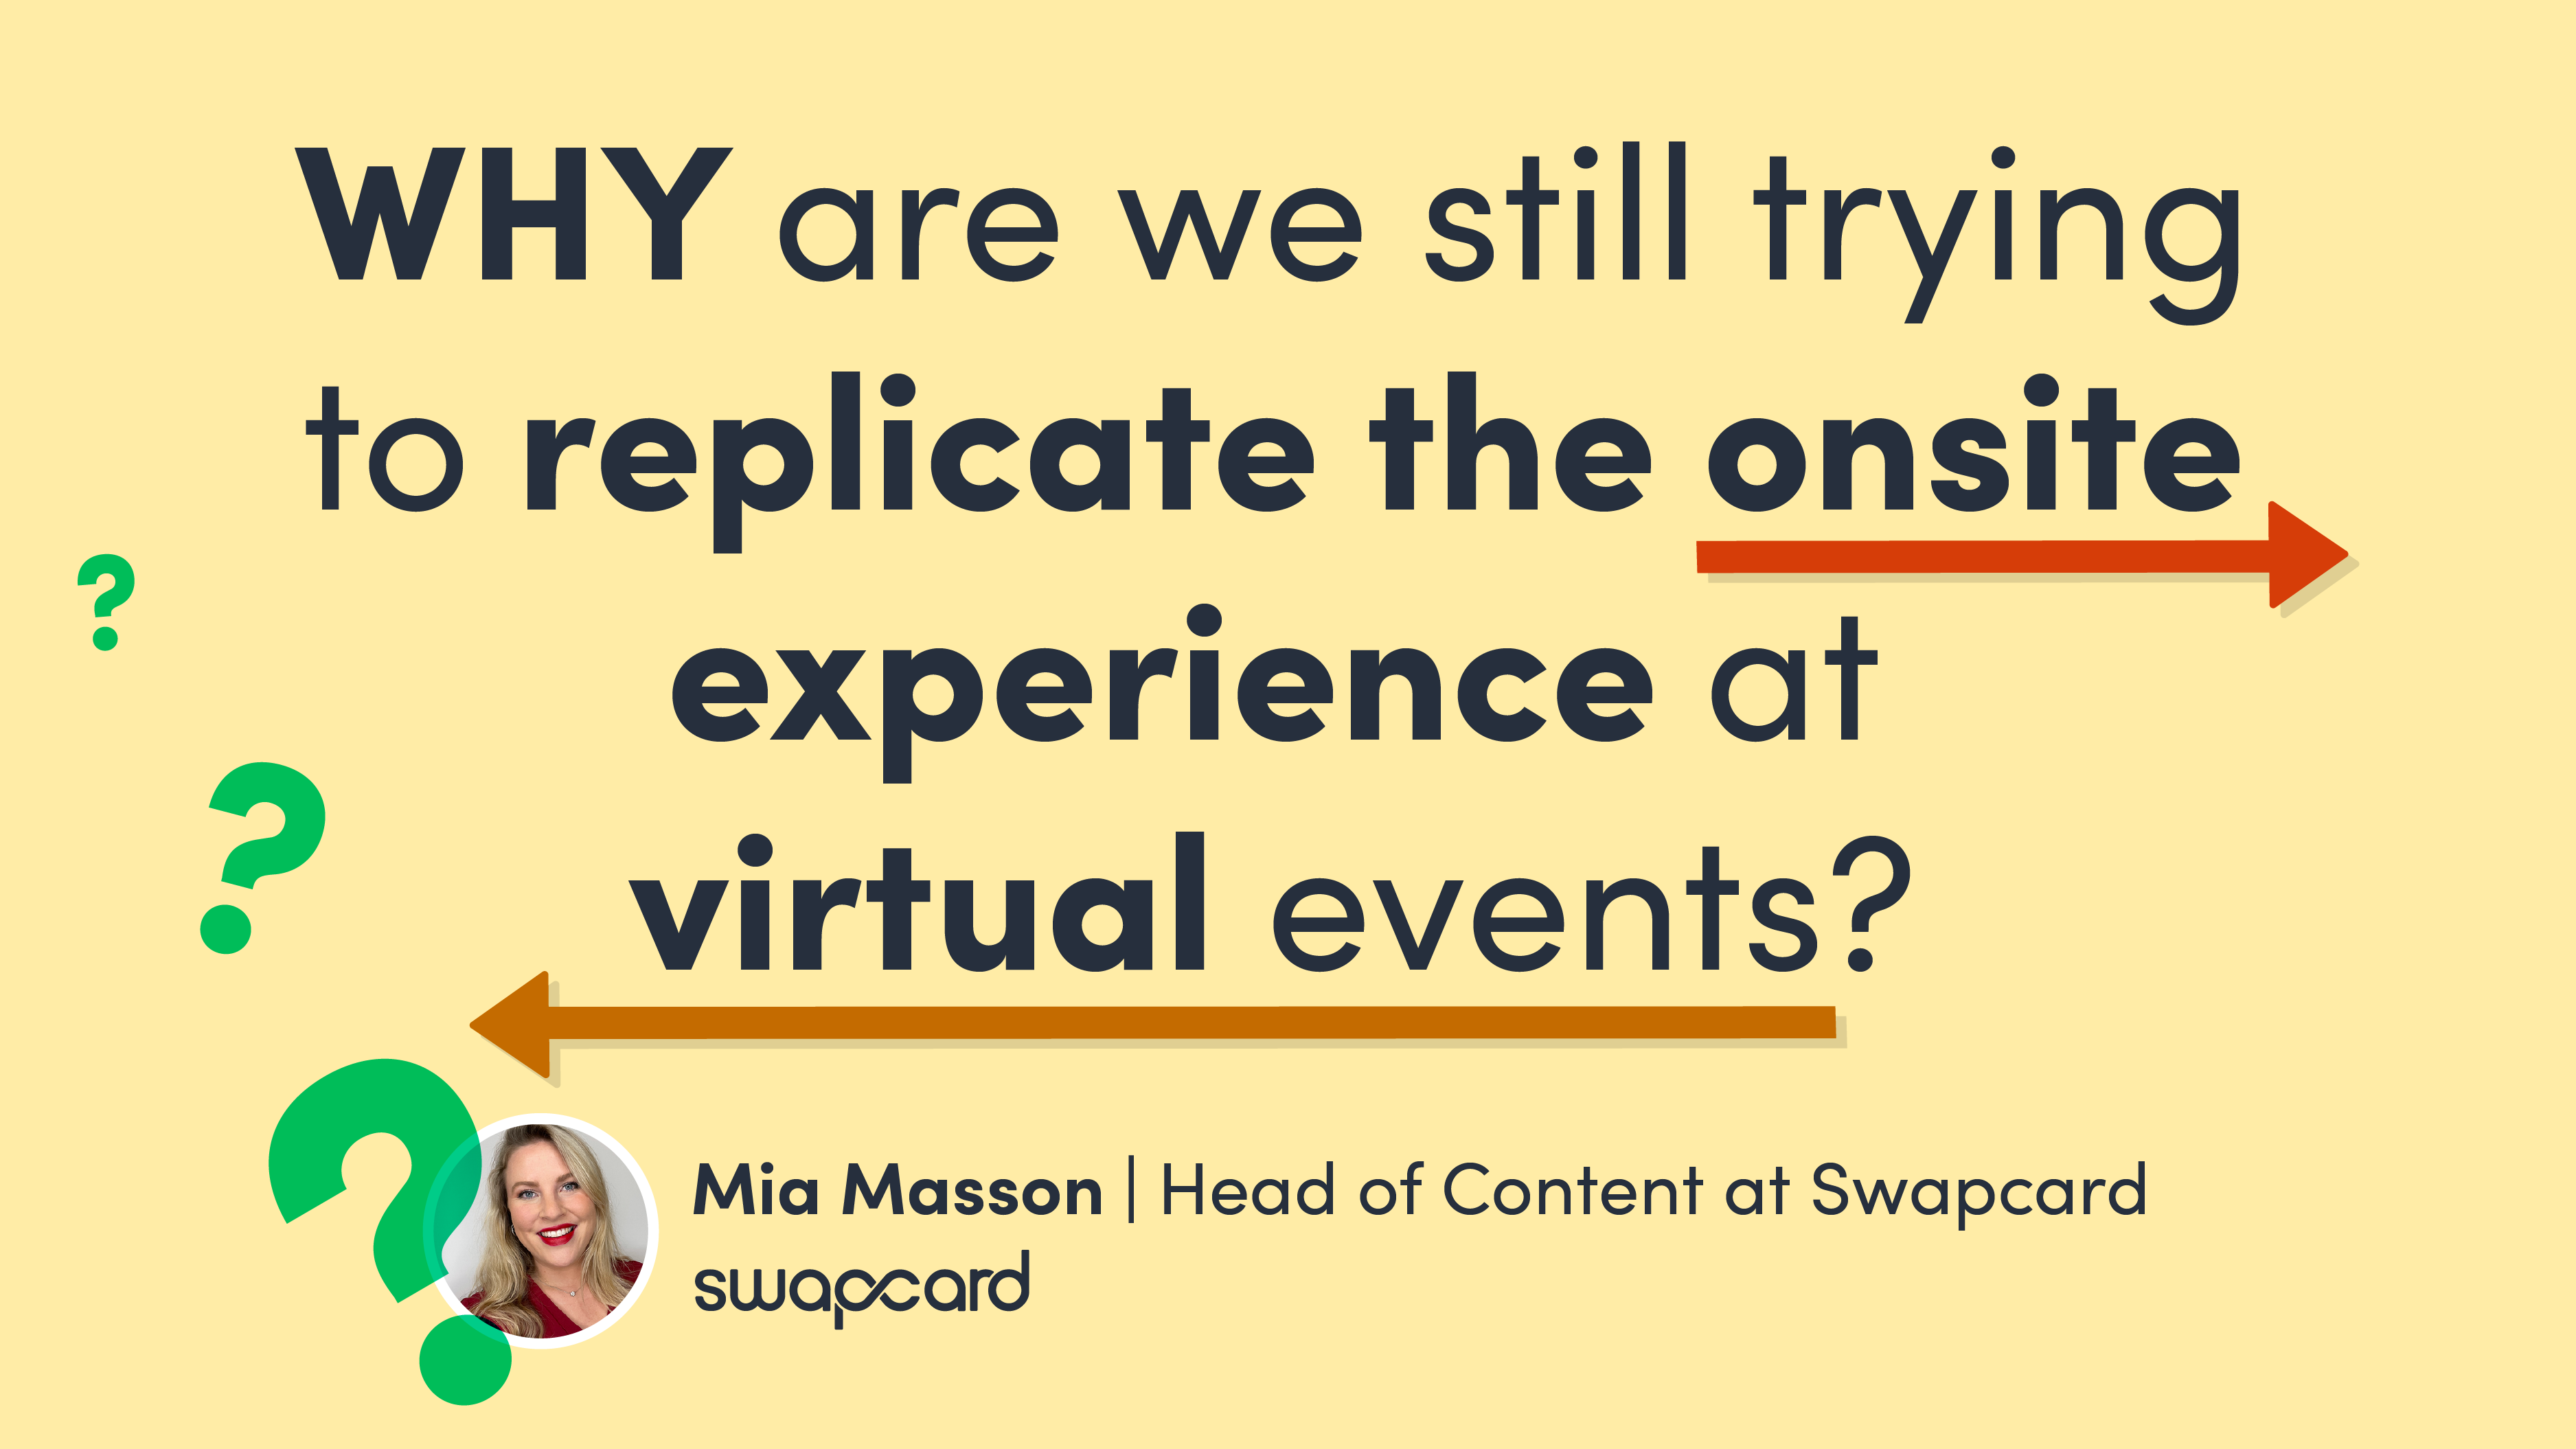 Why are we still trying to replicate the onsite experience at virtual events?